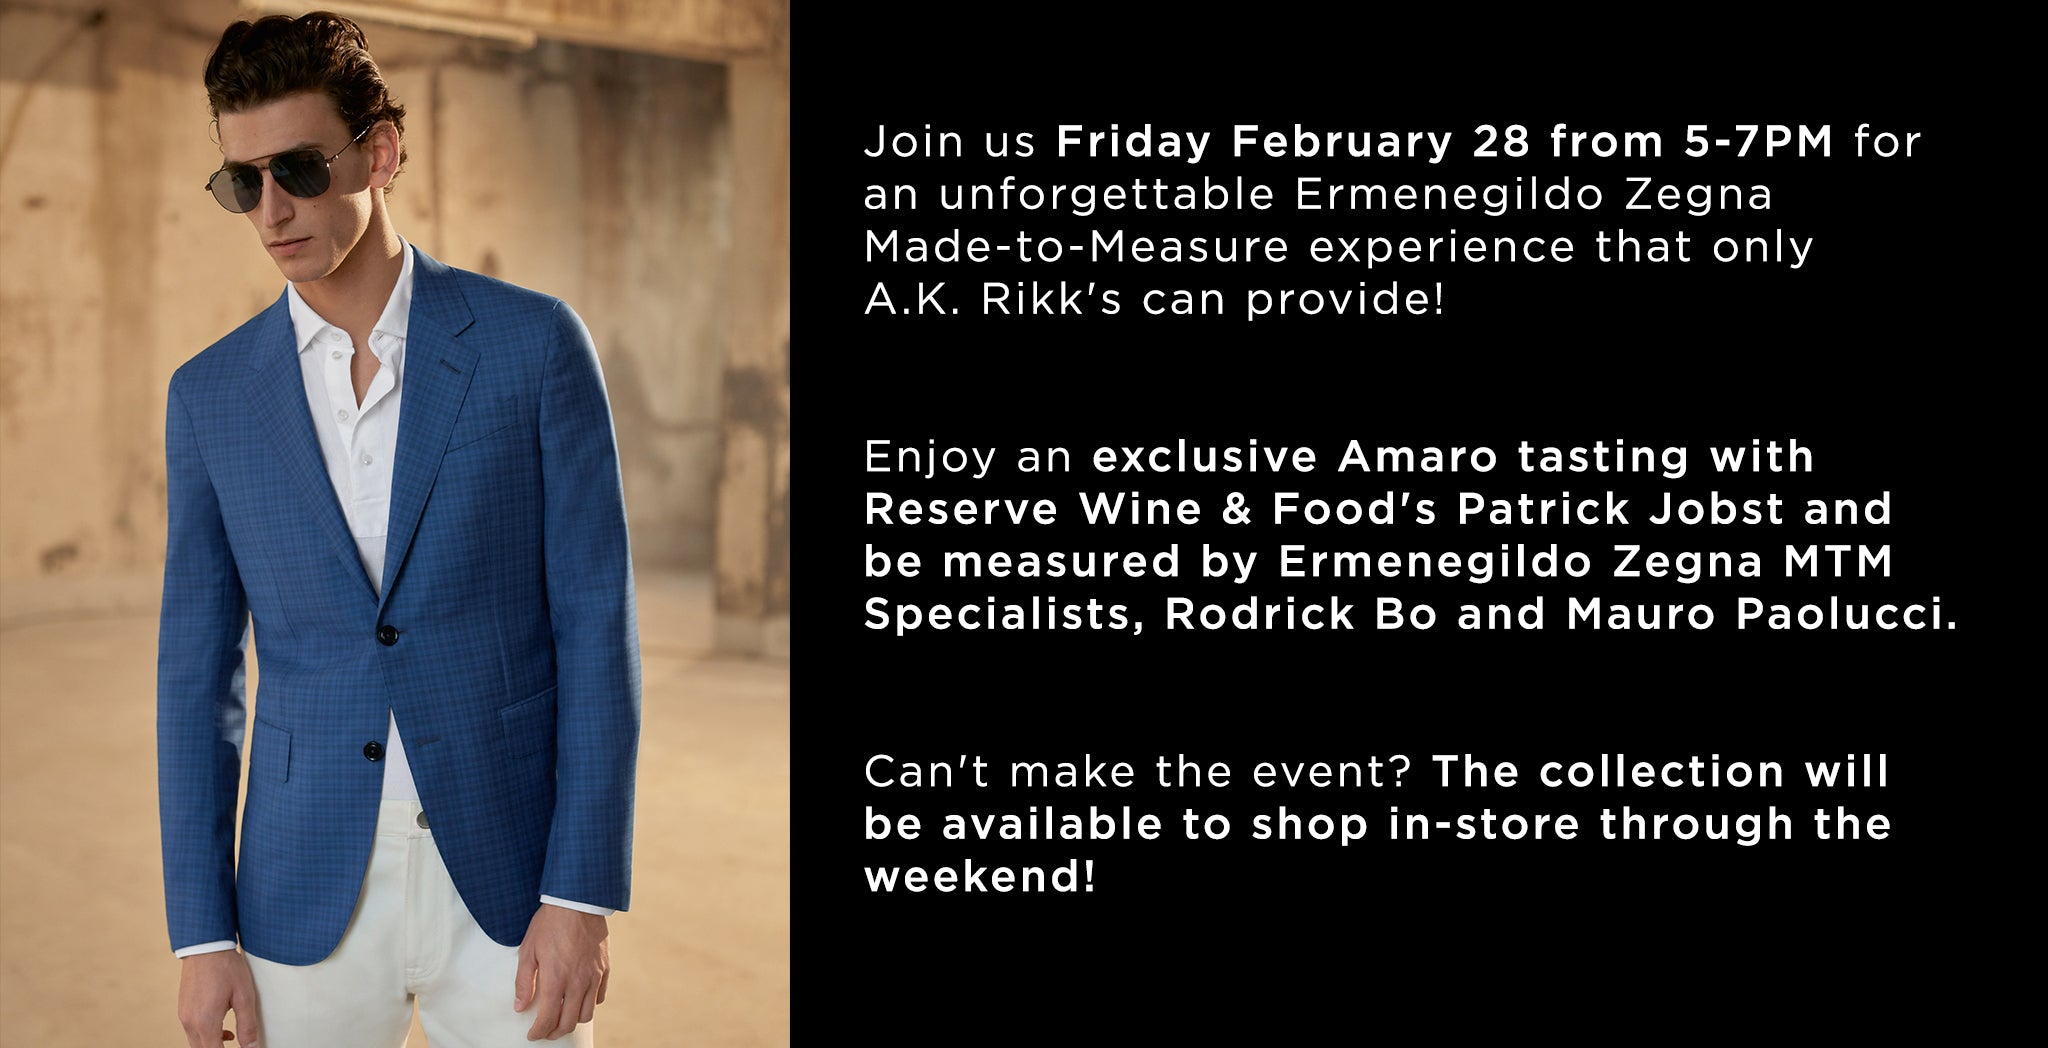 Join us Friday February 28 from 5-7PM for an unforgettable Ermenegildo Zegna Made-to-Measure experience that only  A.K. Rikk's can provide!    Enjoy an exclusive Amaro tasting with  Reserve Wine & Food's Patrick Jobst and be measured by Ermenegildo Zegna MTM  Specialists, Rodrick Bo and Mauro Paolucci.    Can't make the event? The collection will be available to shop in-store through the weekend!